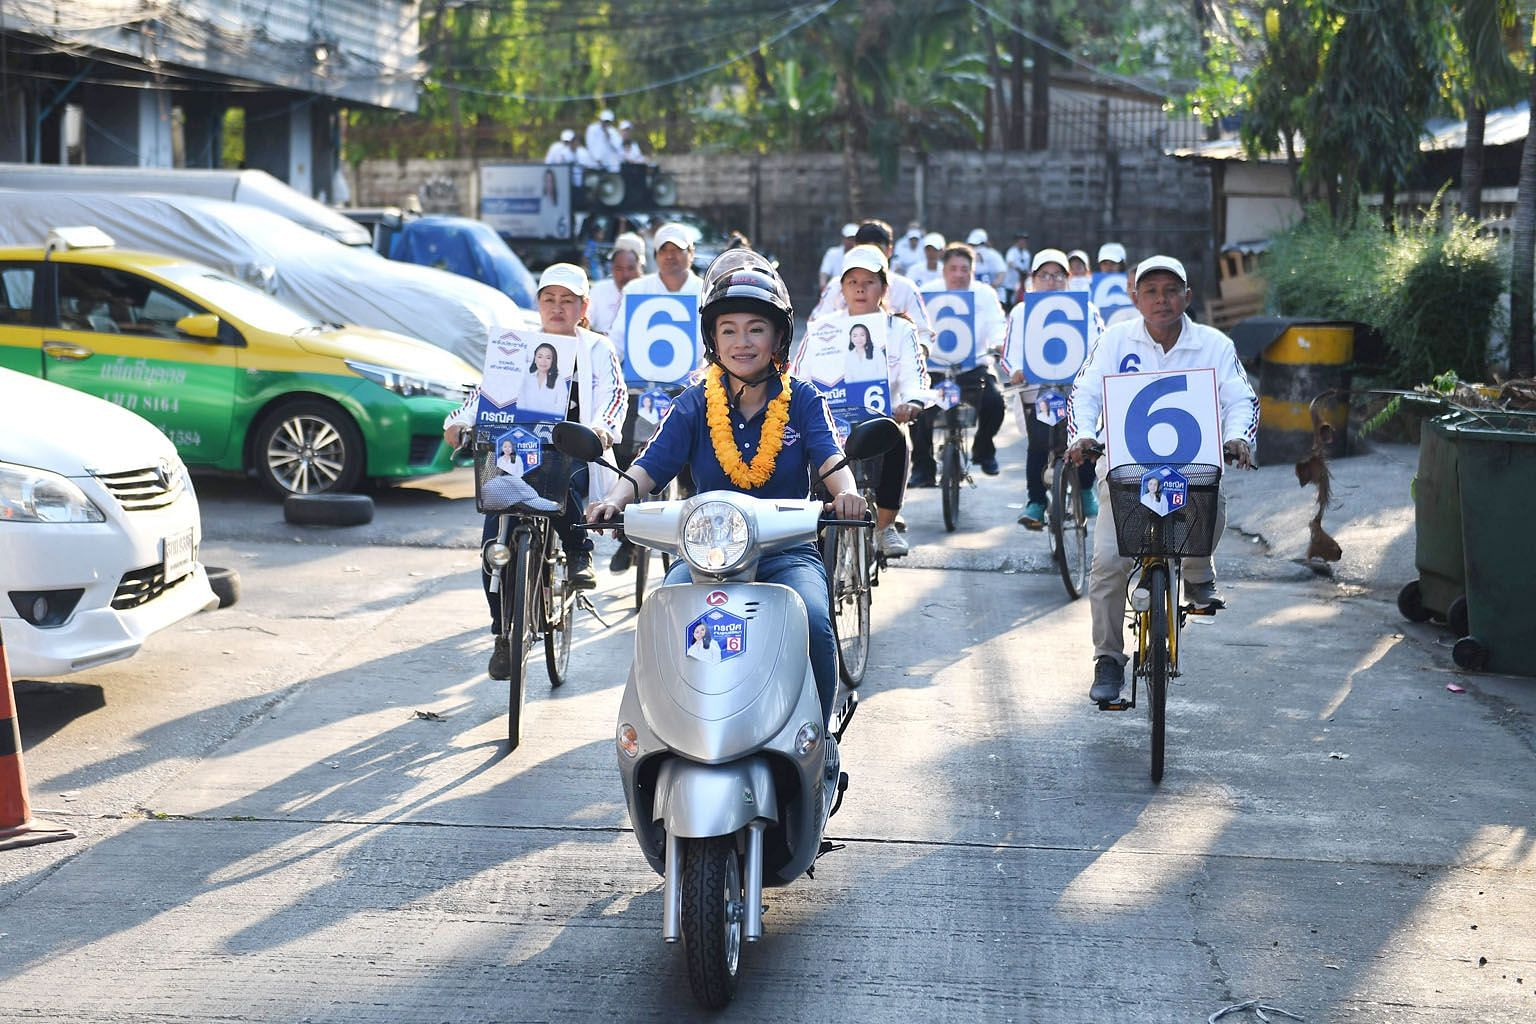 Parliamentary candidate Korranit Ngamsukonratana of the army-aligned Palang Pracharath Party leading a motorcade during a campaign in Klongtoey district in Bangkok on Thursday. This is the first time that Thailand's military has formed a political pa